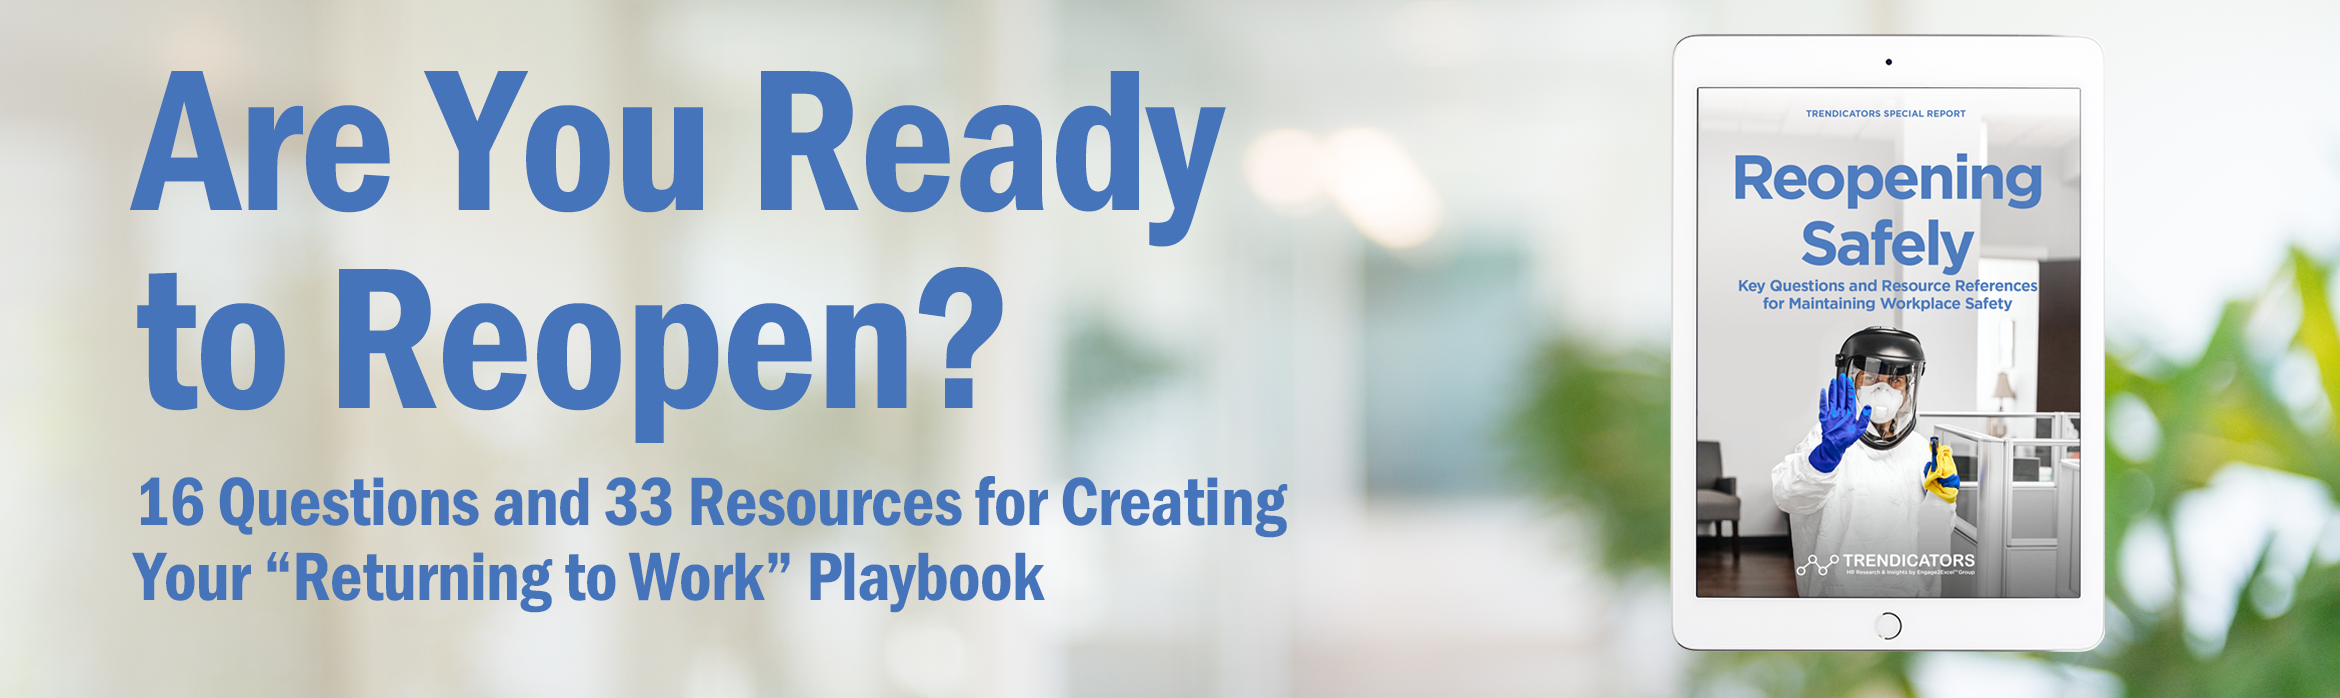 "Are You Ready to Reopen? 16 questions and 33 resources to consider in creating your ""returning to work"" playbook"